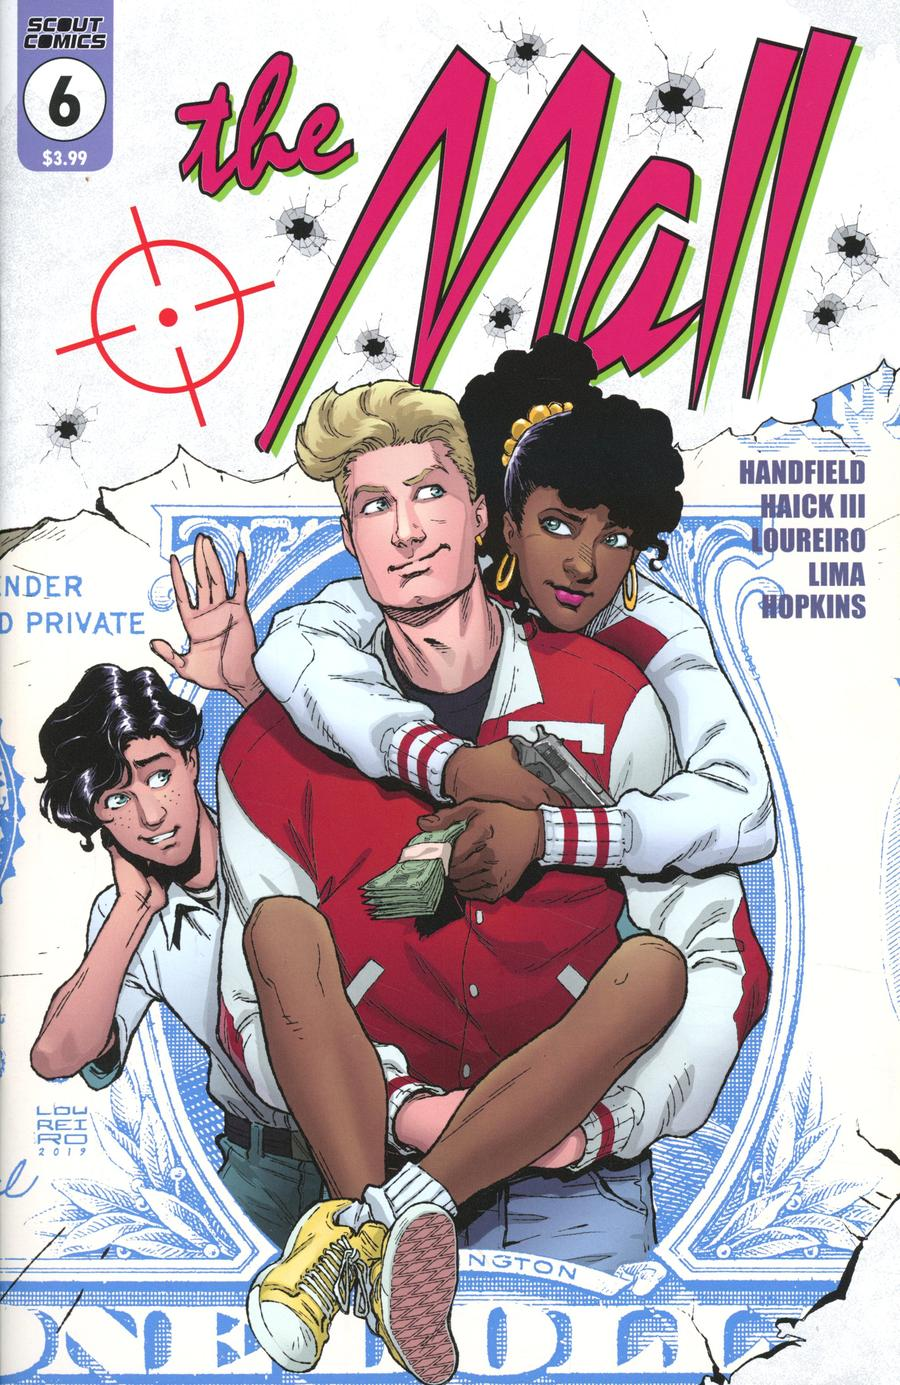 Mall (Scout Comics) #6 Cover A Regular Cover